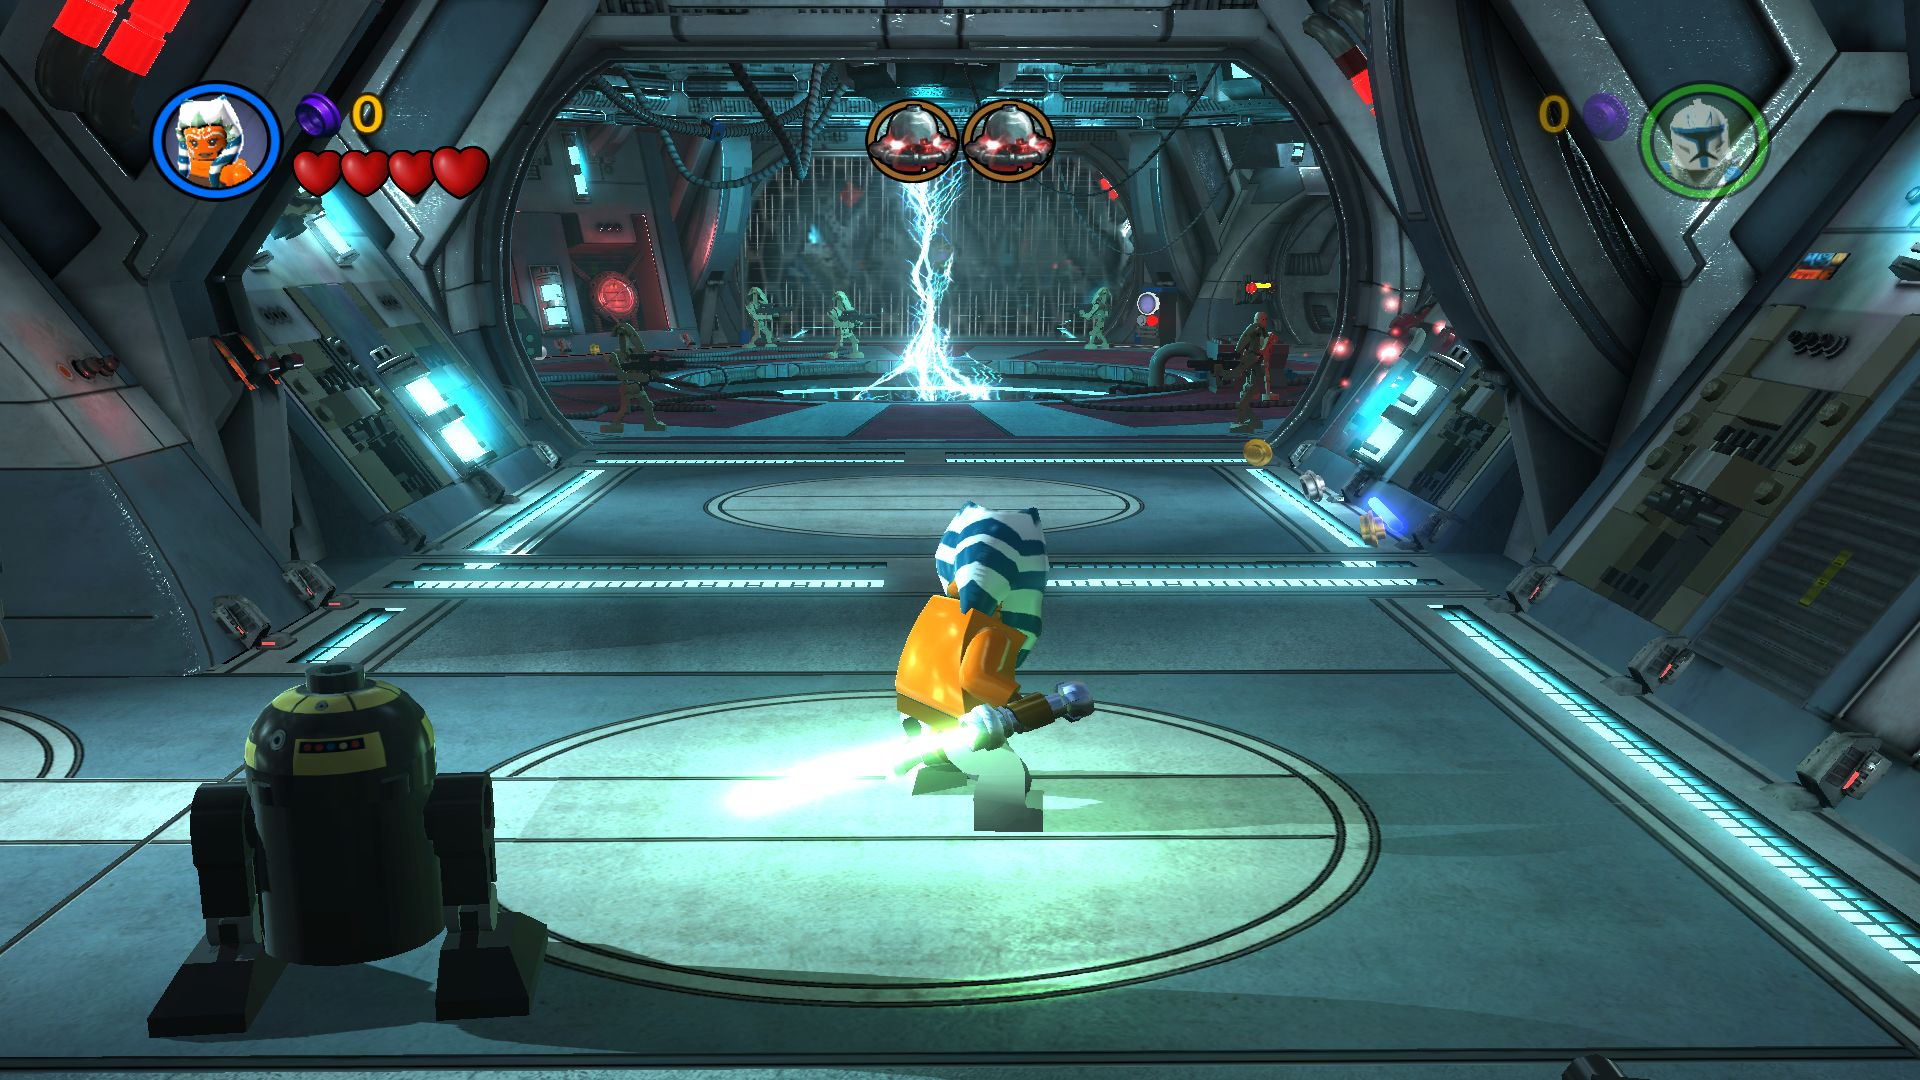 Build Some Heroes in LEGO Star Wars III: The Clone Wars